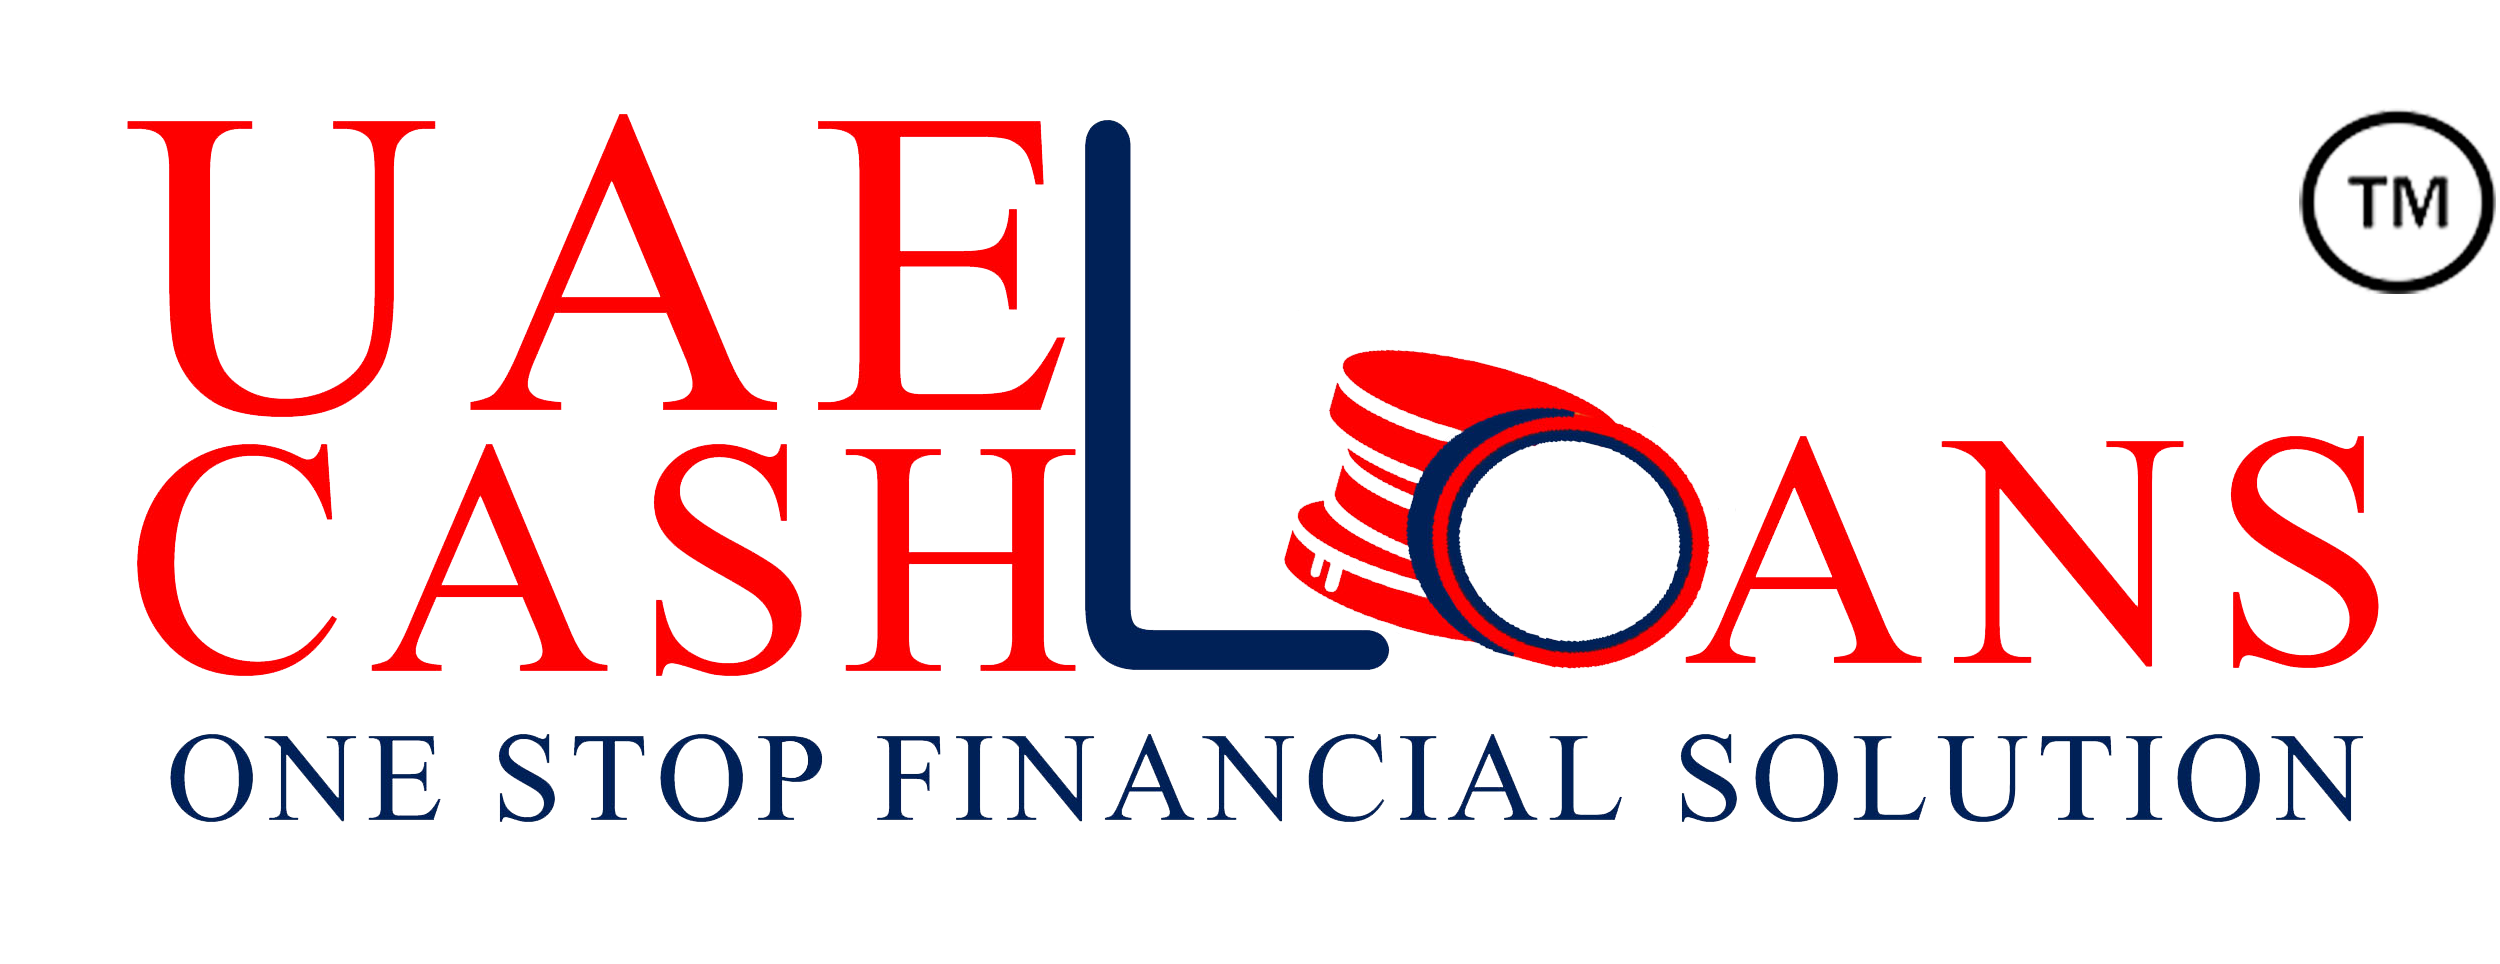 UAE Cash Loans Official